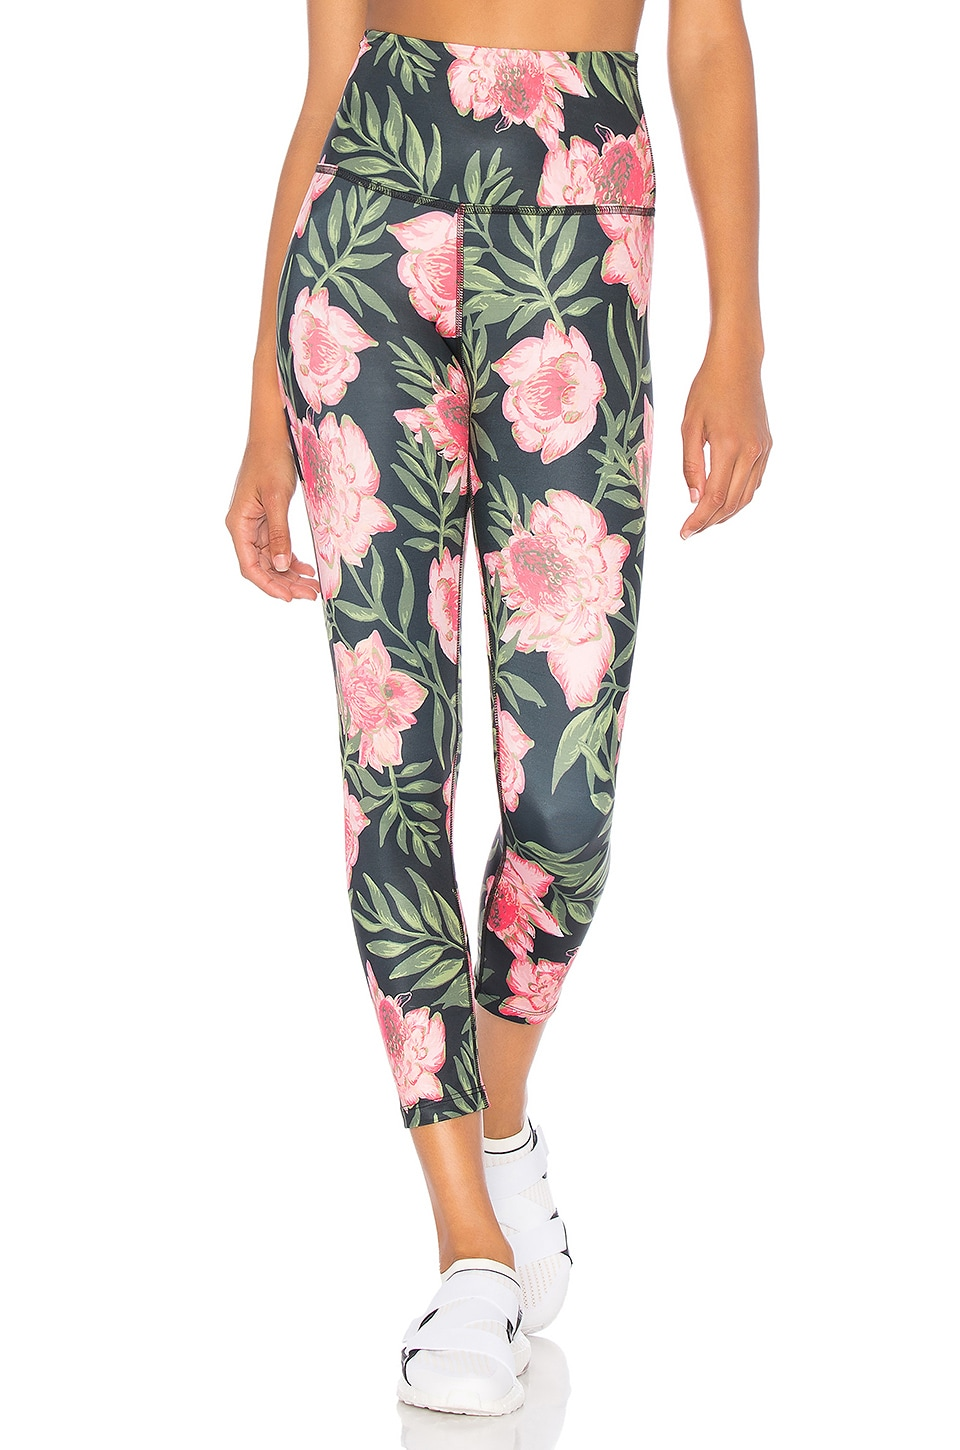 bcb8327e14ebf1 Beyond Yoga Lux Print High Waisted Capri Legging in Protea Vine ...